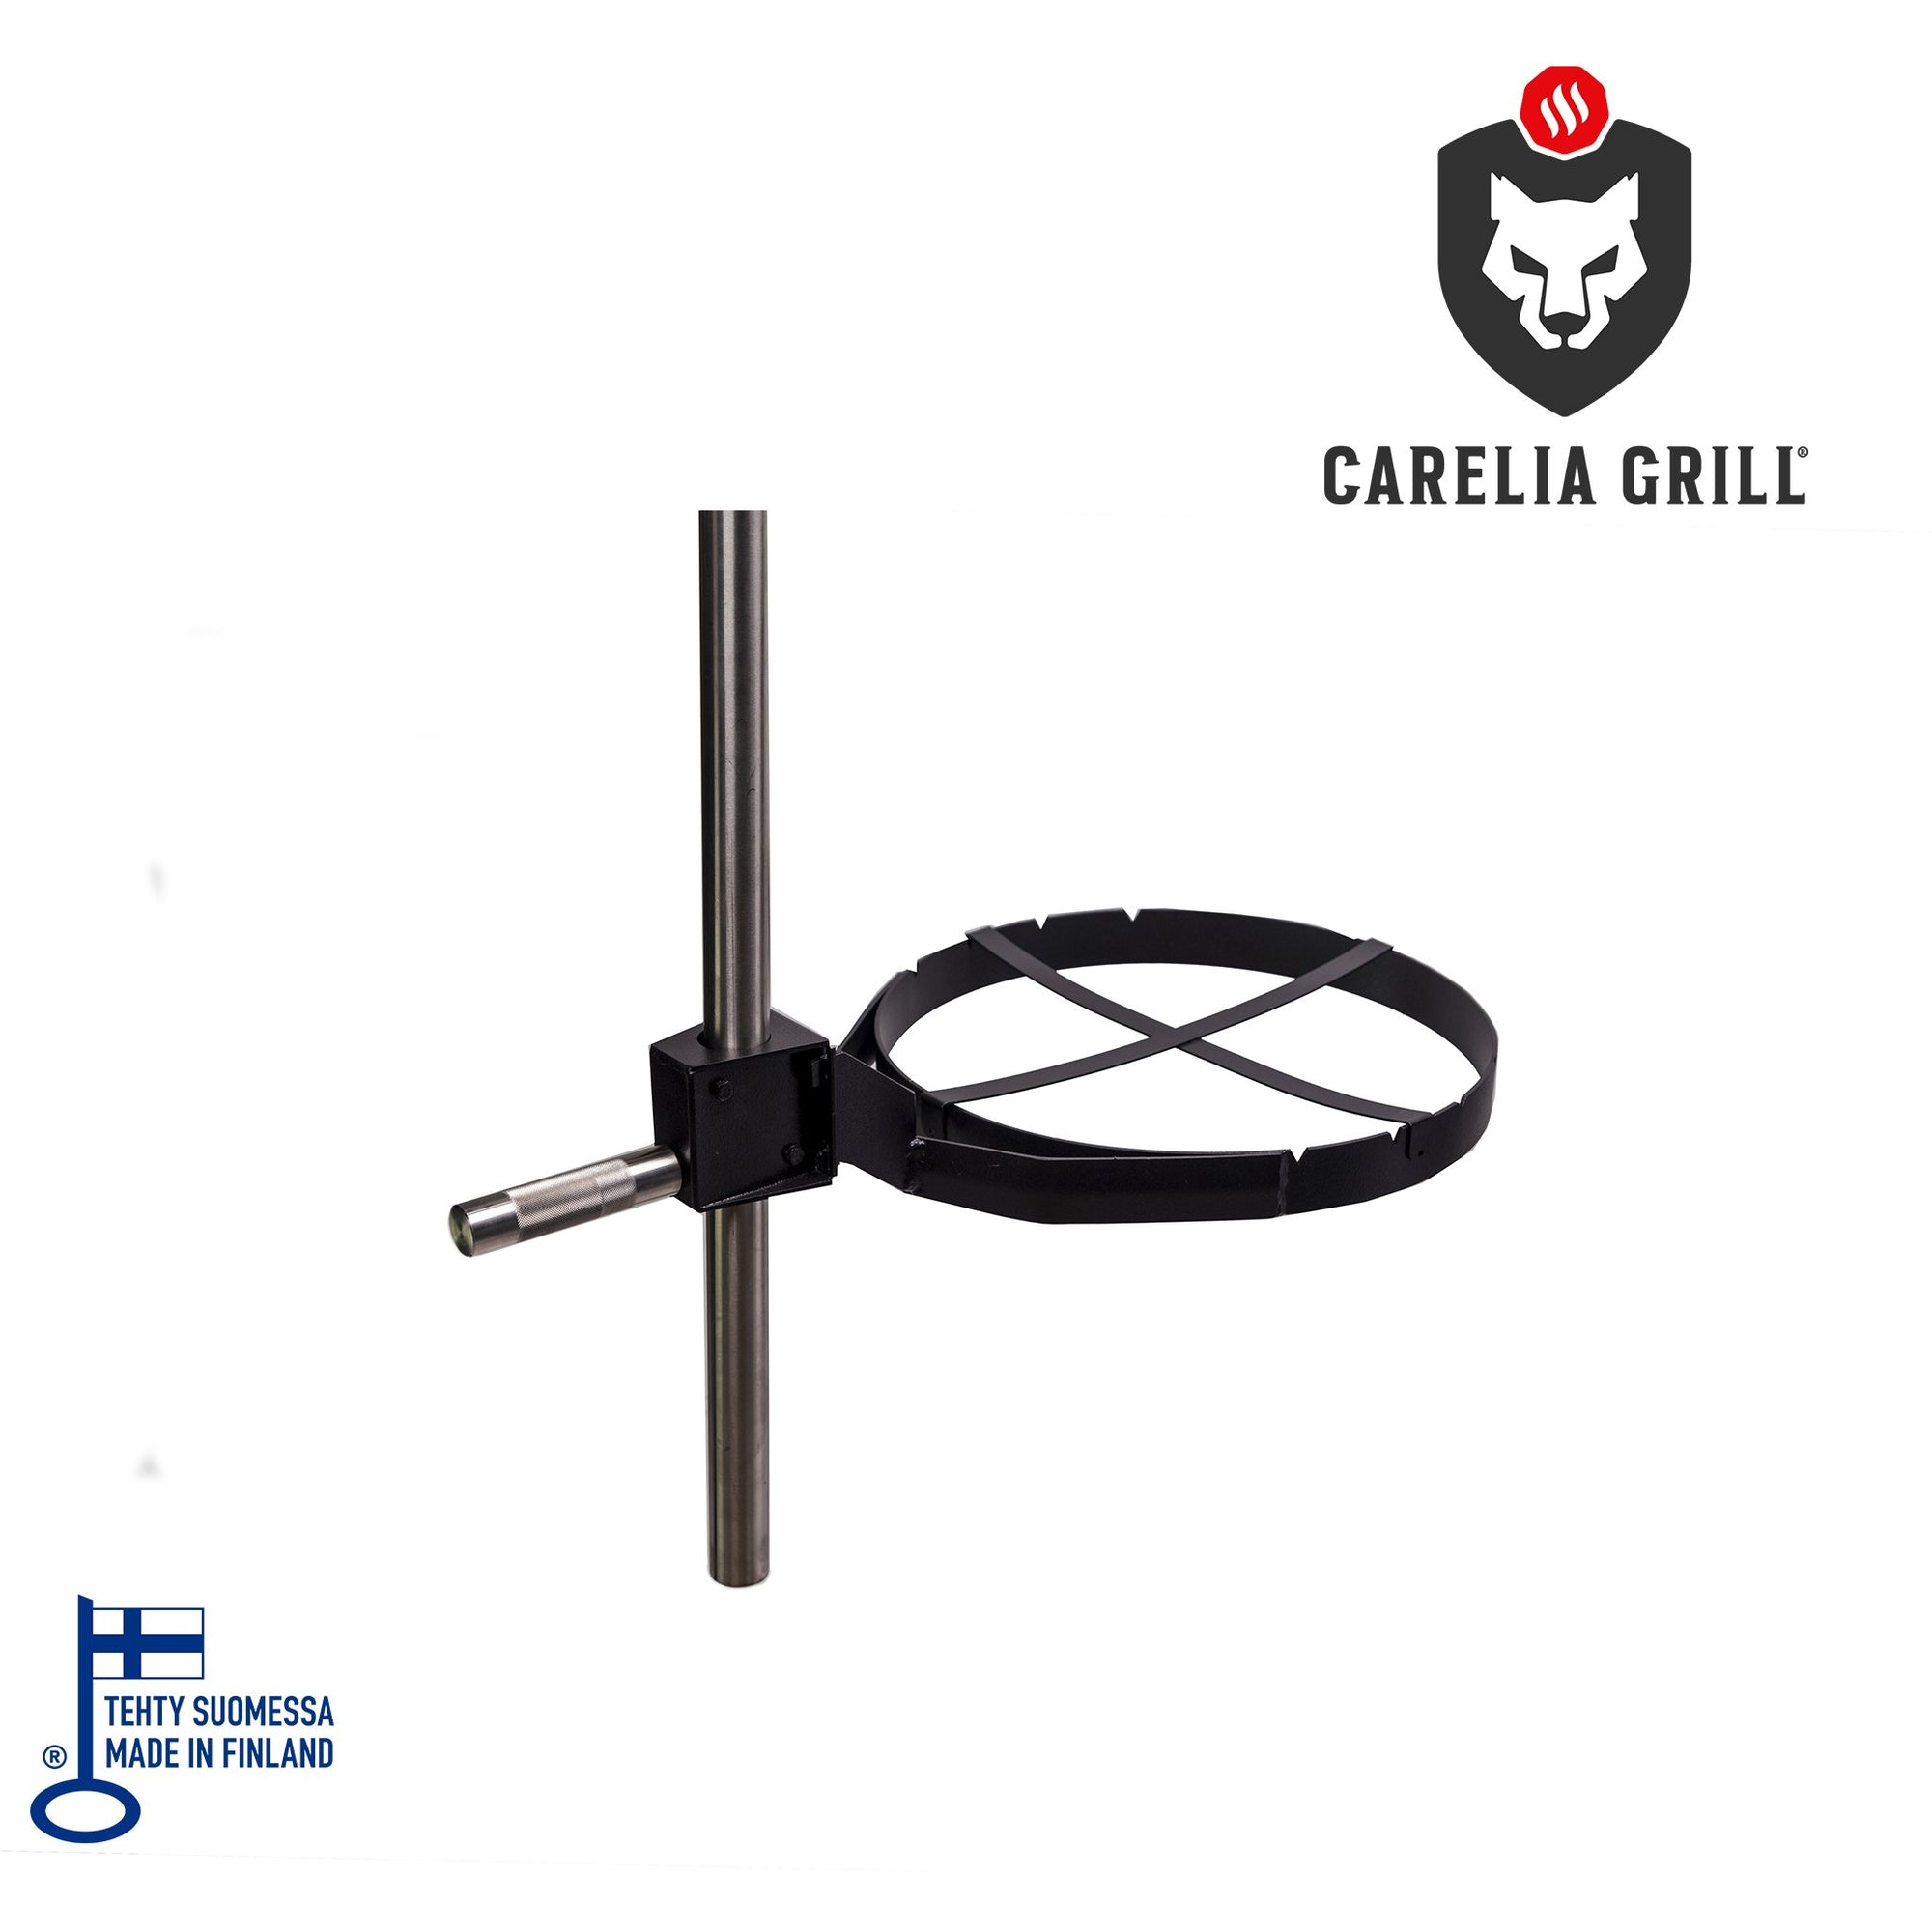 CARELIA GRILL® LIFTING MECHANISMS